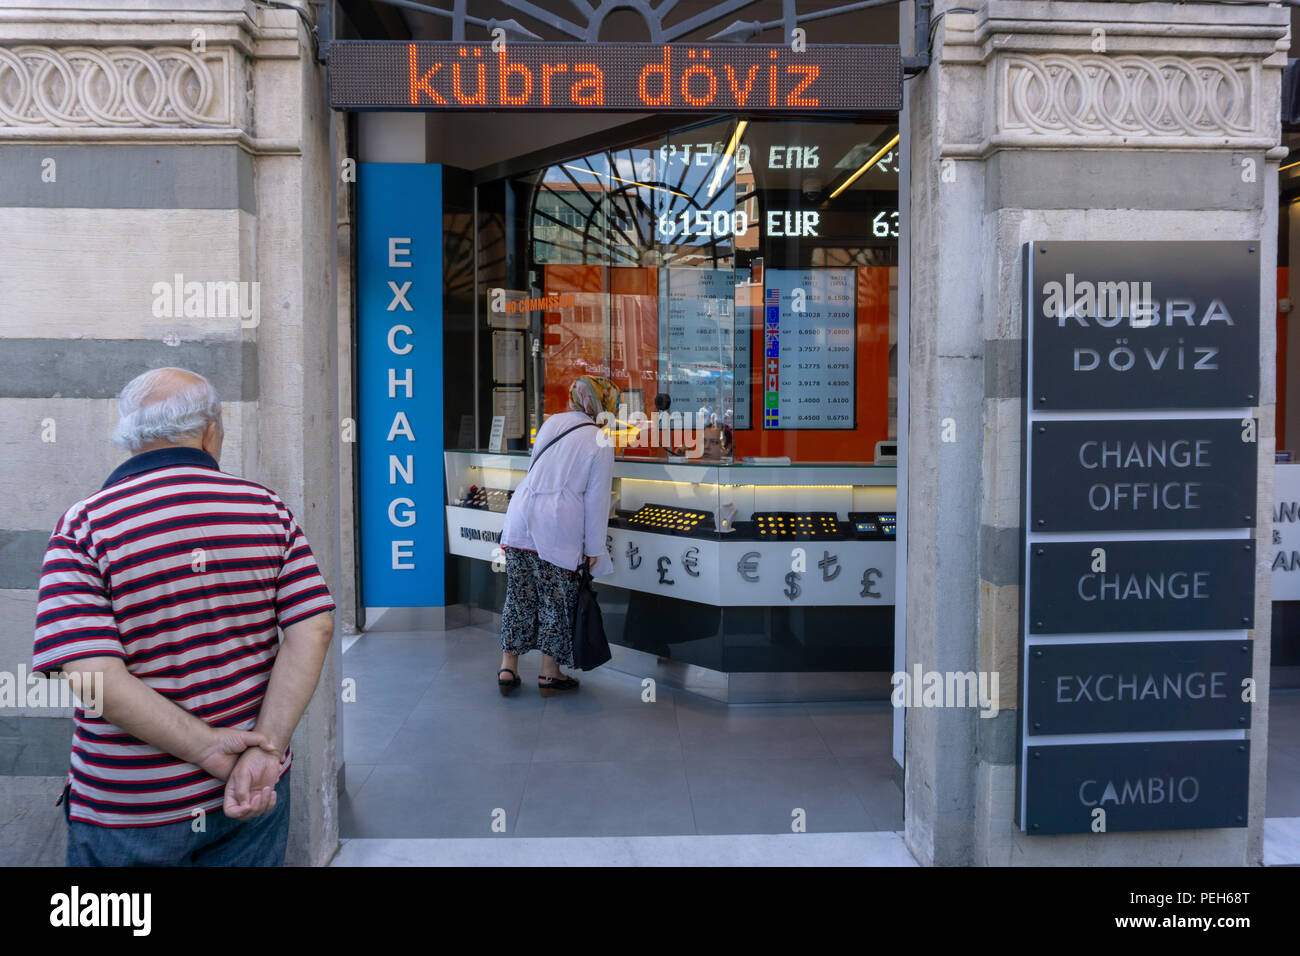 Istanbul, Turkey. 15th August 2018. A man watching the change in Turkish currency Credit: Engin Karaman/Alamy Live News Stock Photo